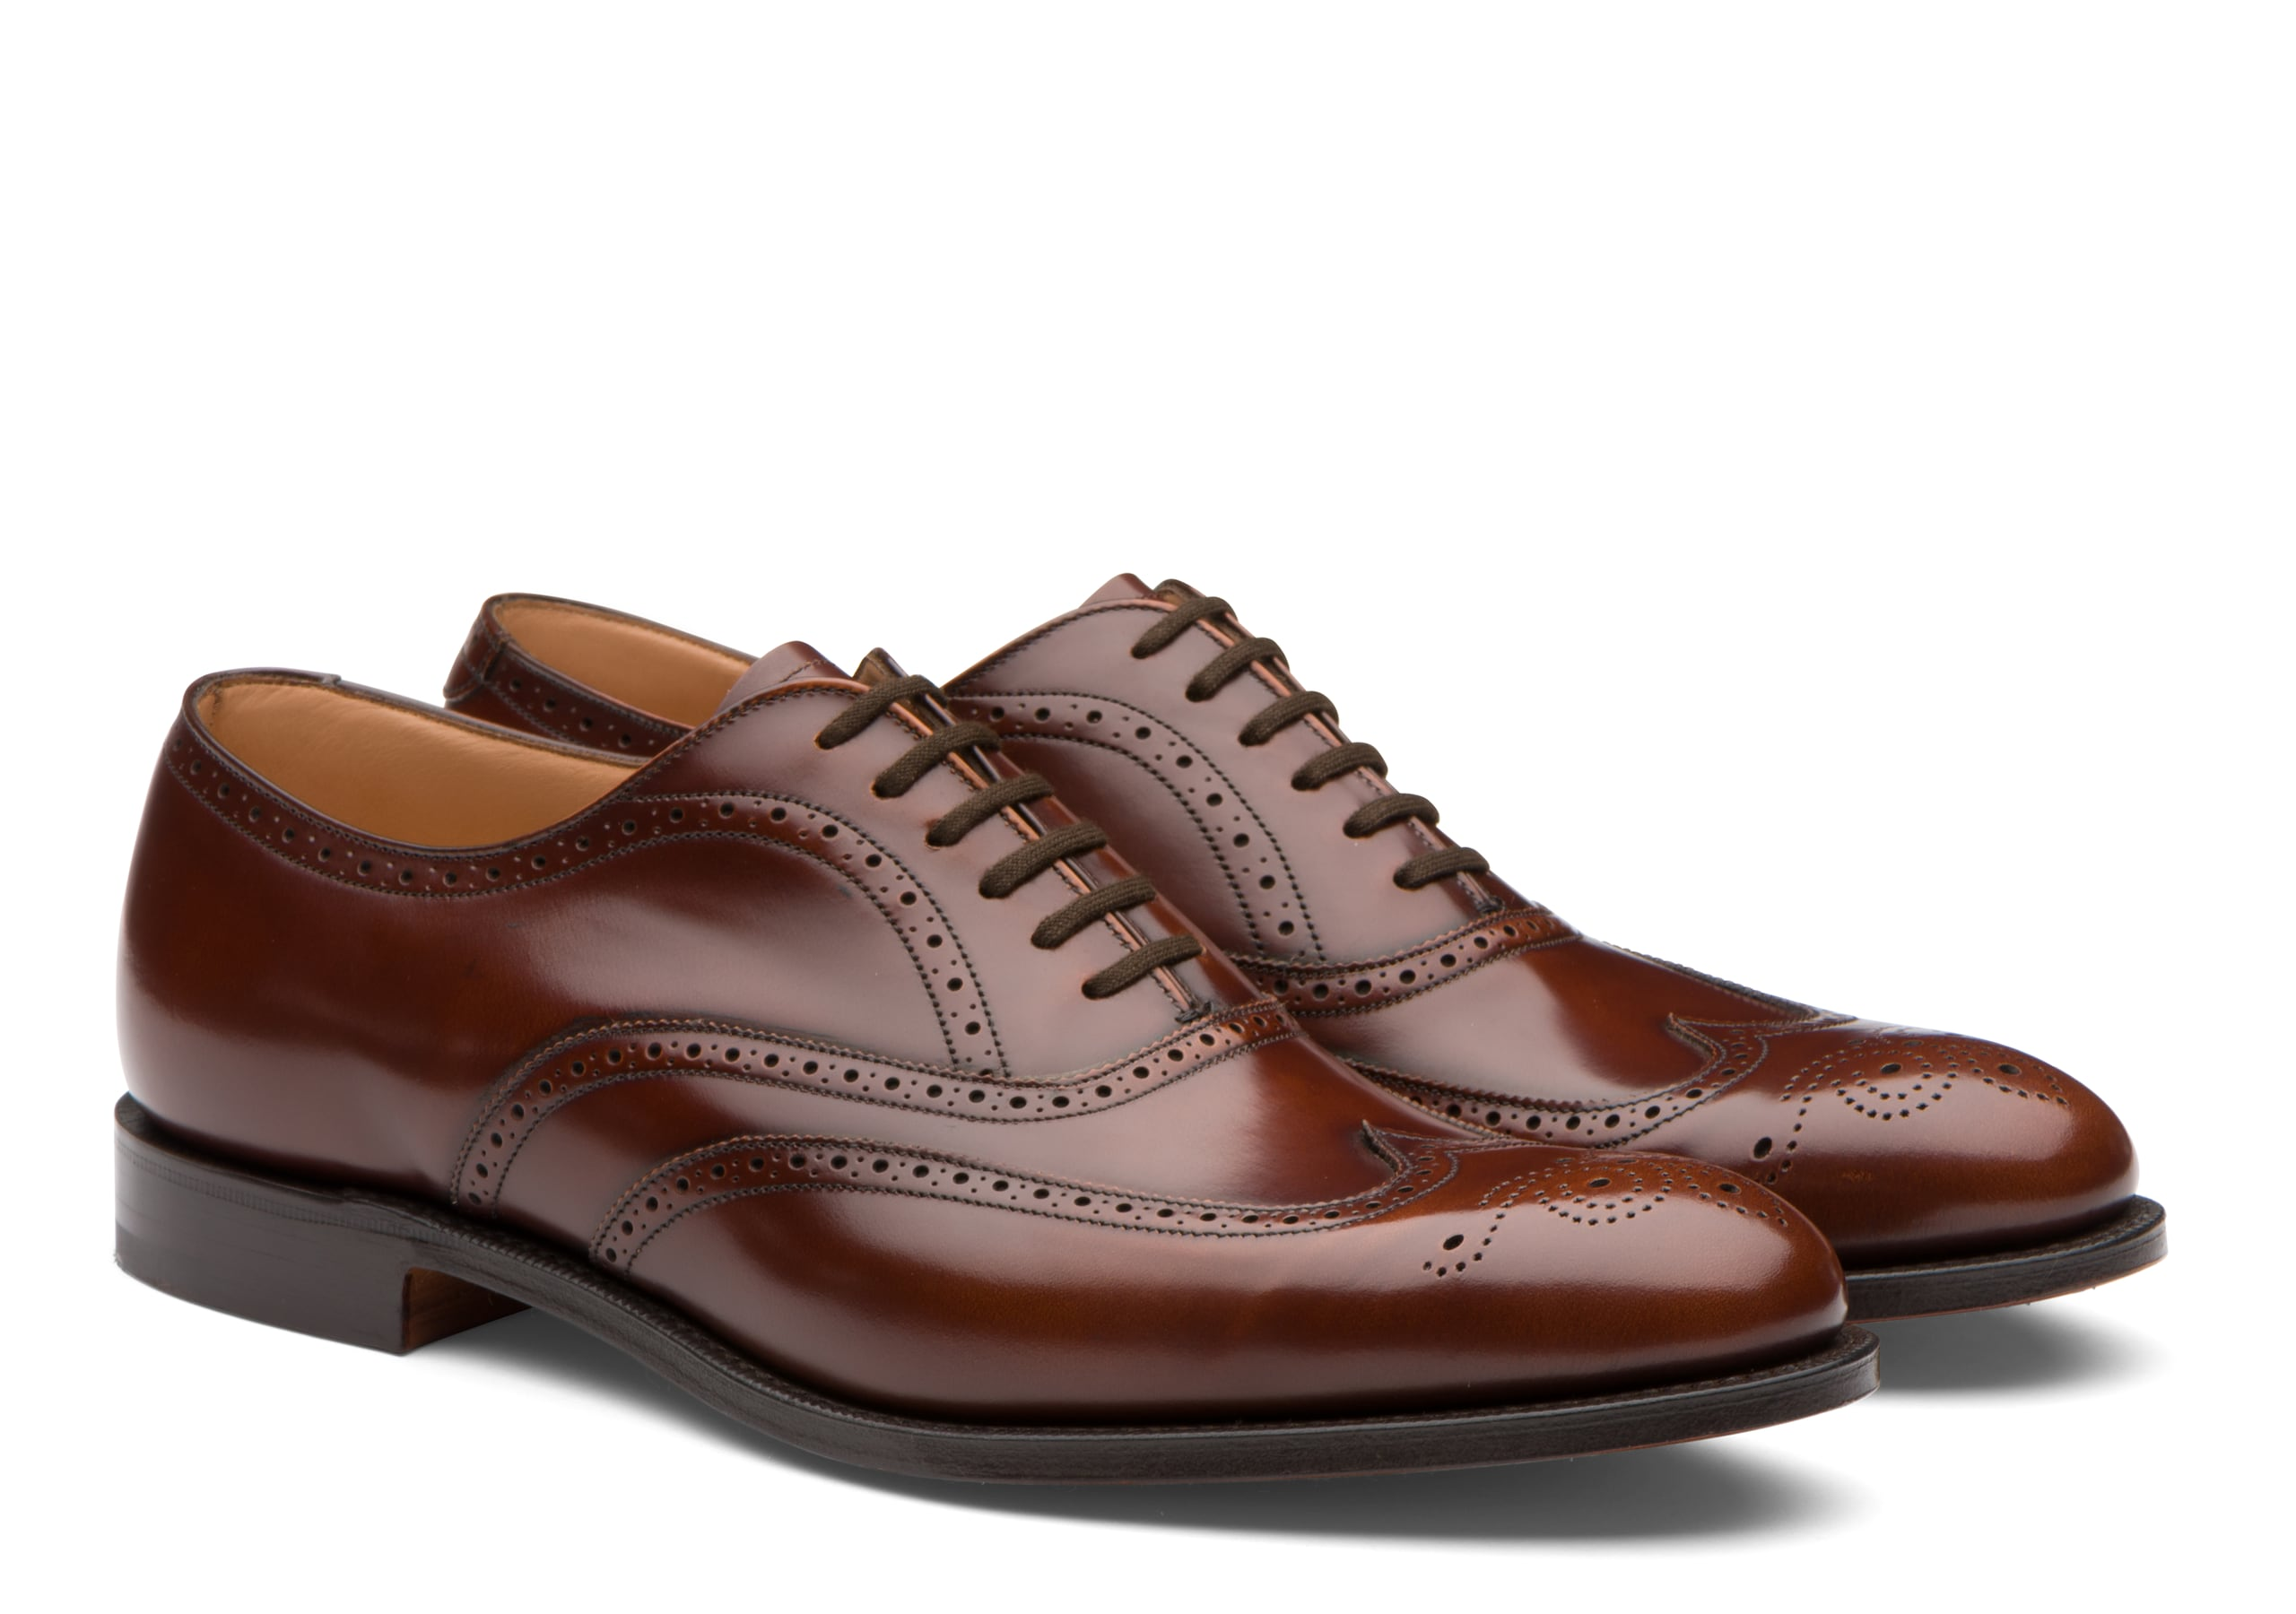 Berlin Church's Polished Fumè Oxford Brogue Brown